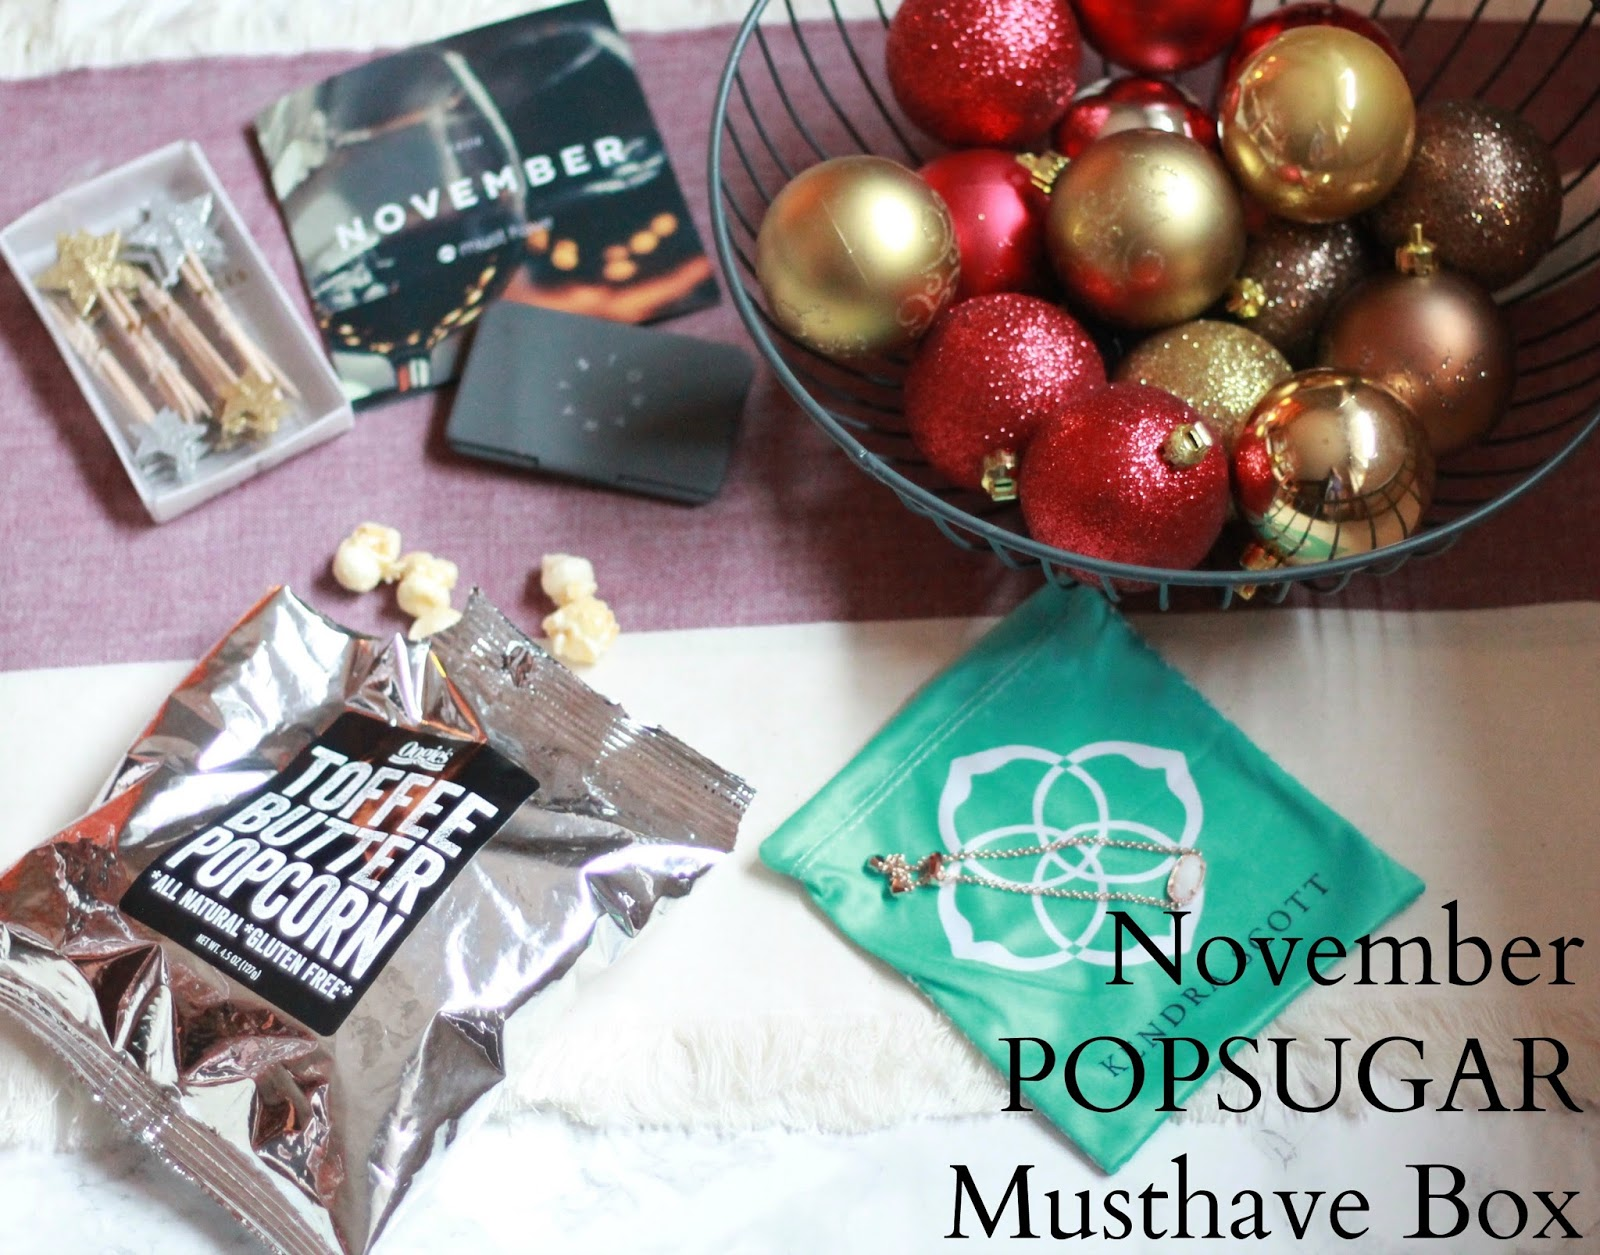 November POPSUGAR Musthave box review